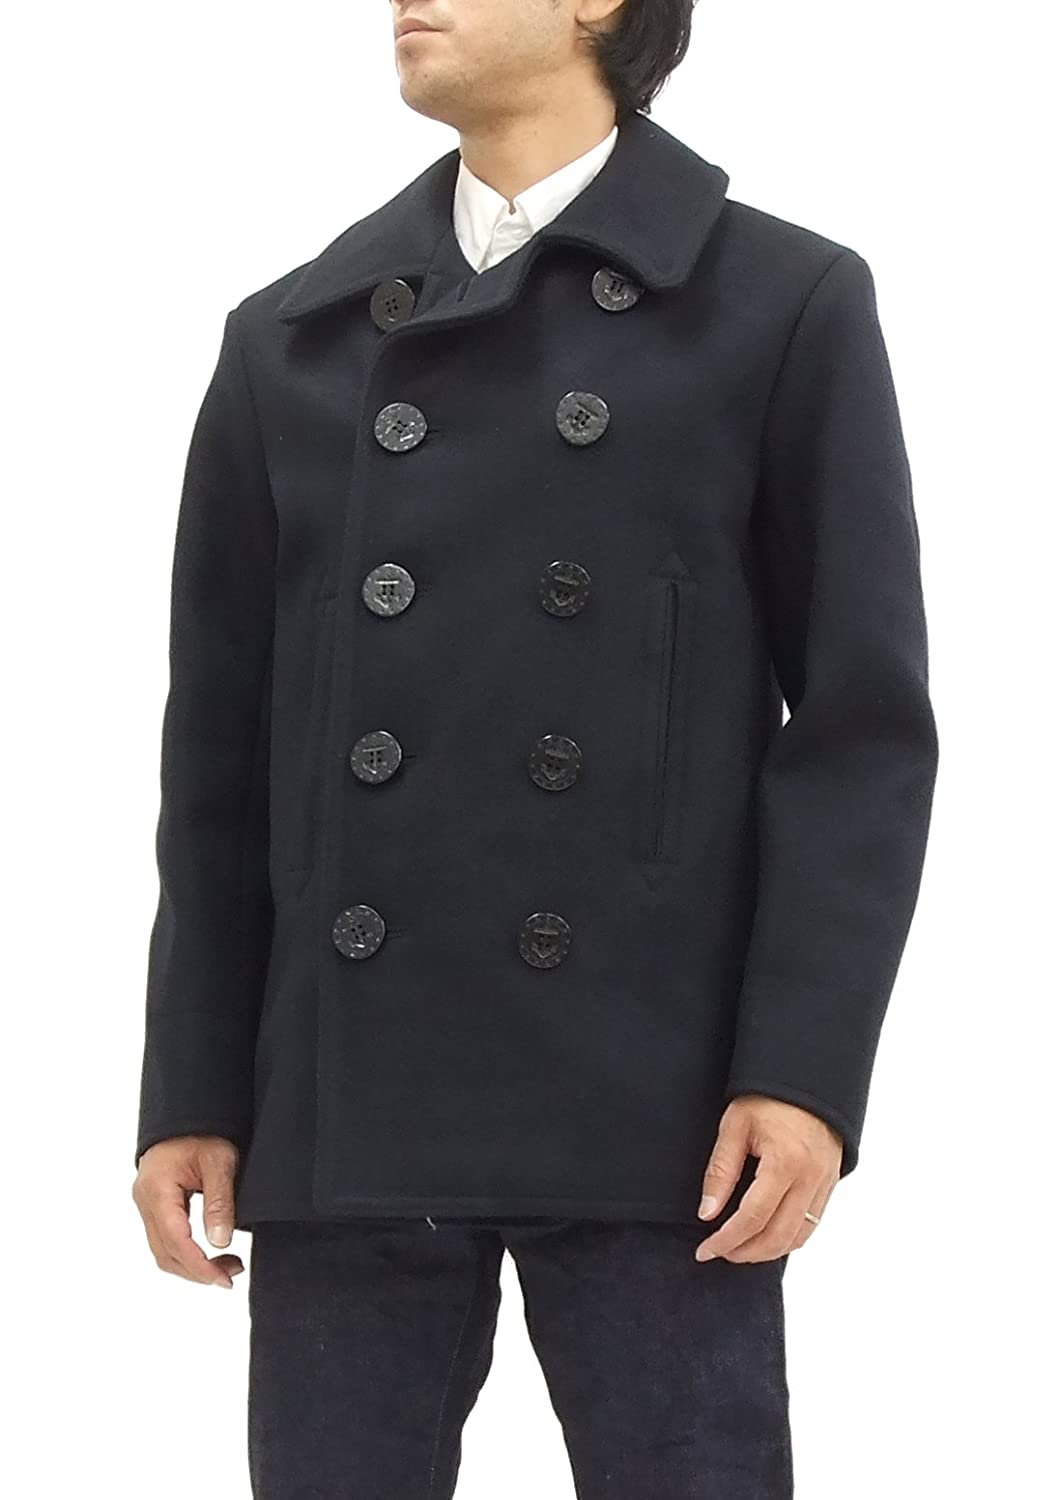 a758ee7823d Buzz rickson s Men s U.S. Navy Wool Pea Coat BR11554 Double-Breasted  Overcoat